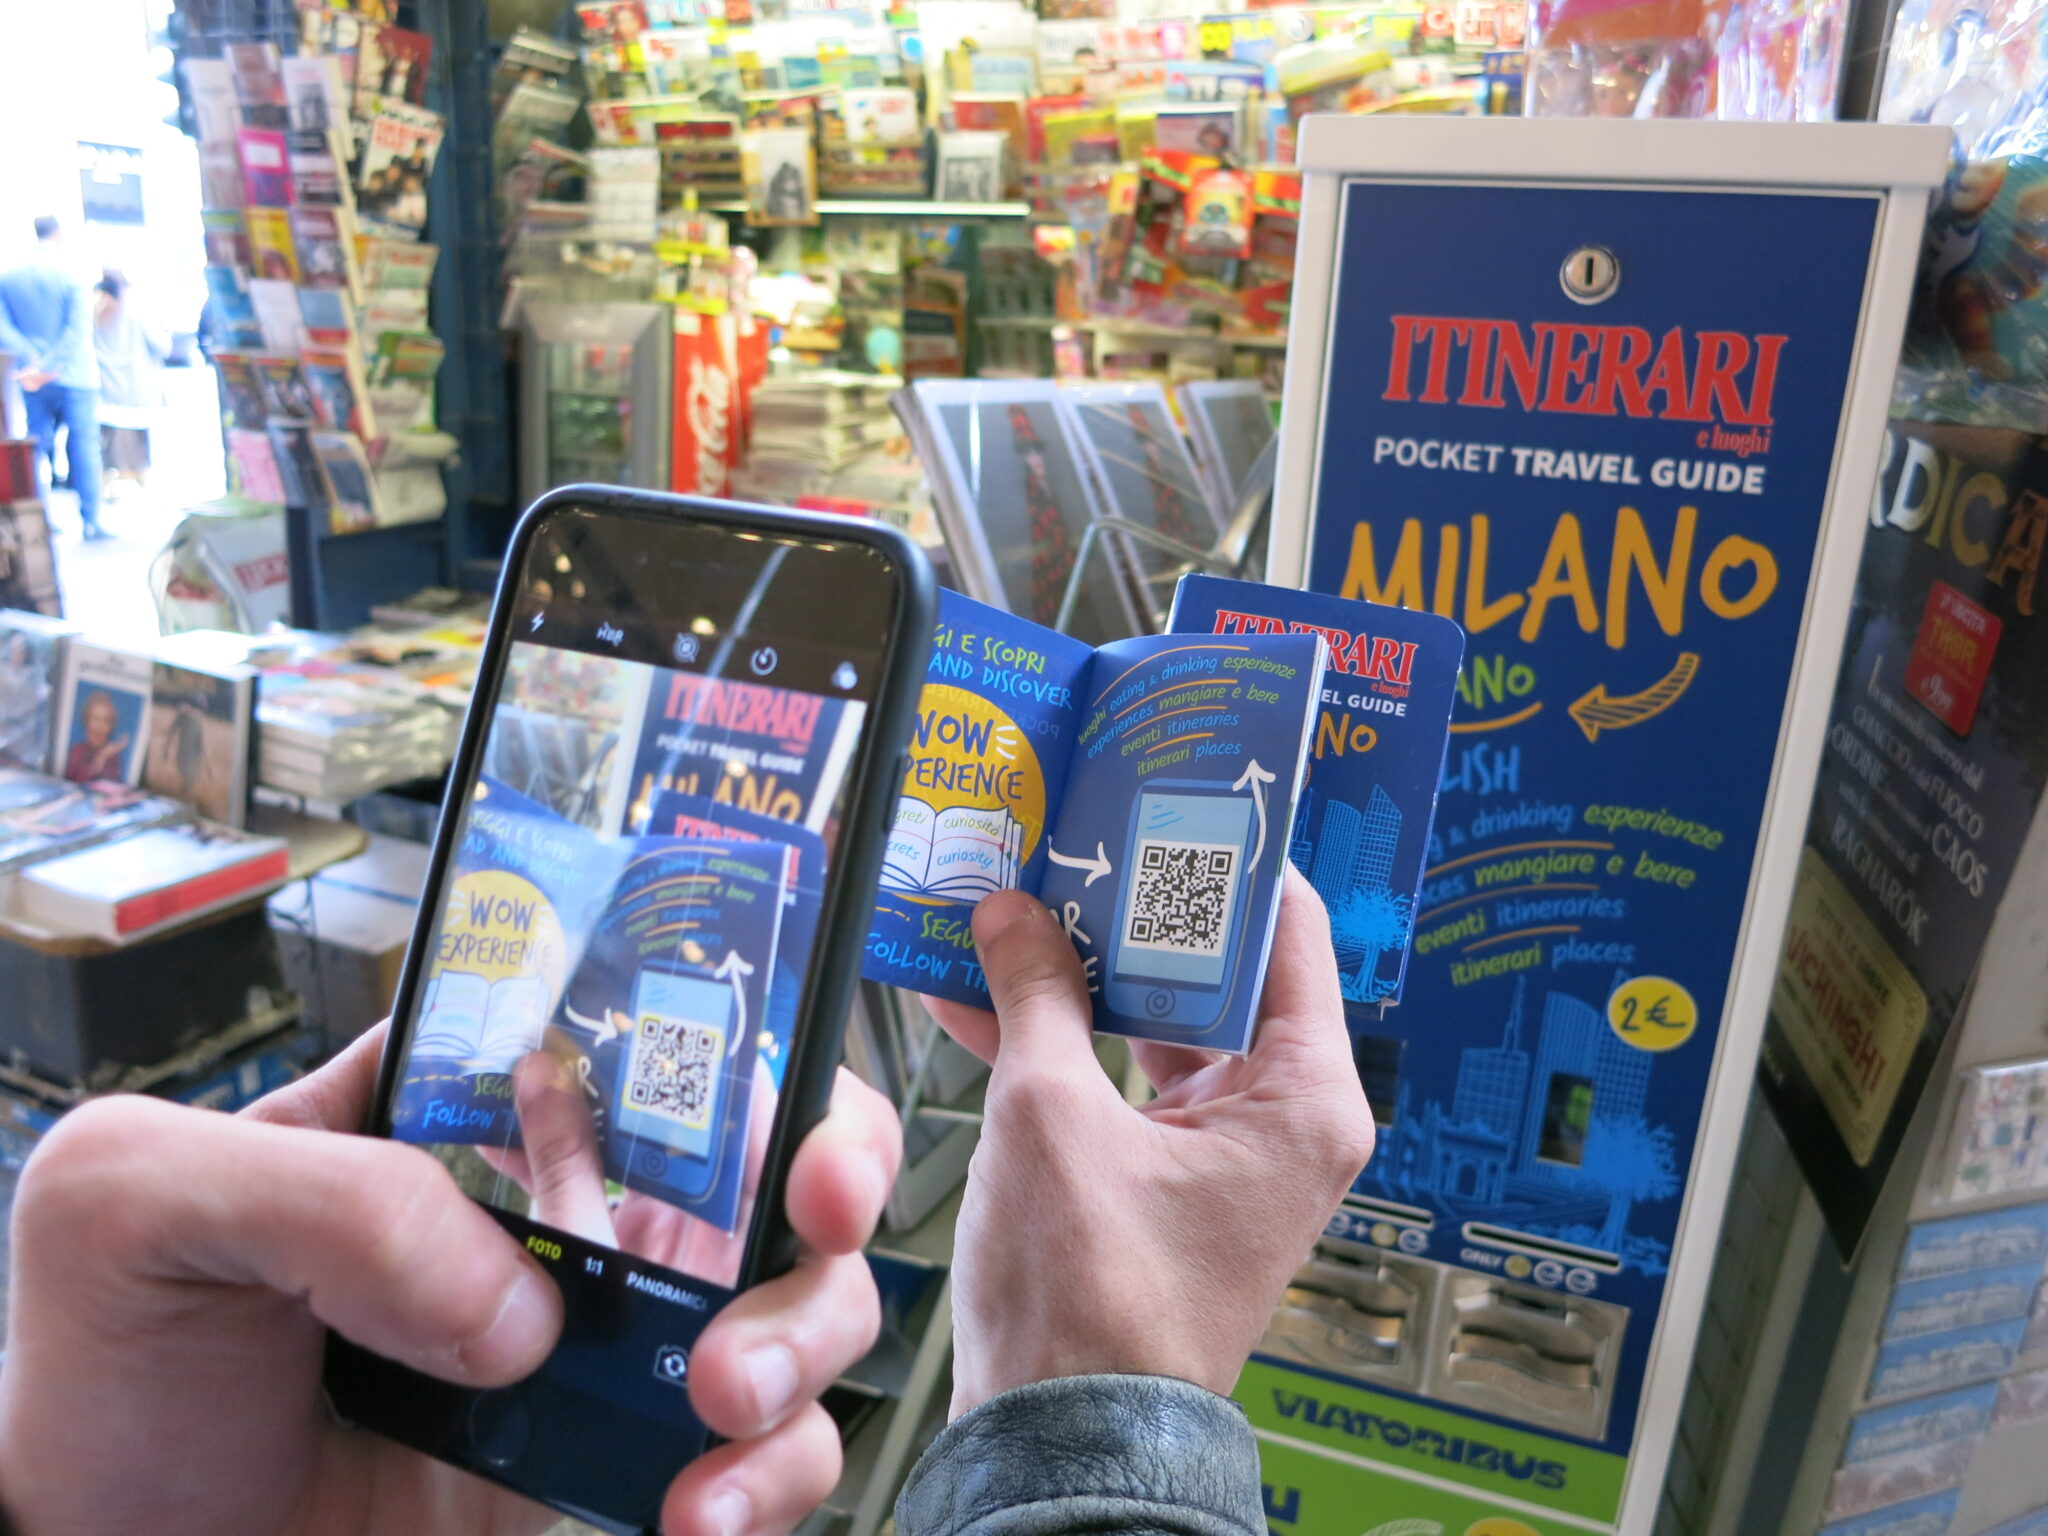 Pocket Travel Guide: ecco la prima app di carta